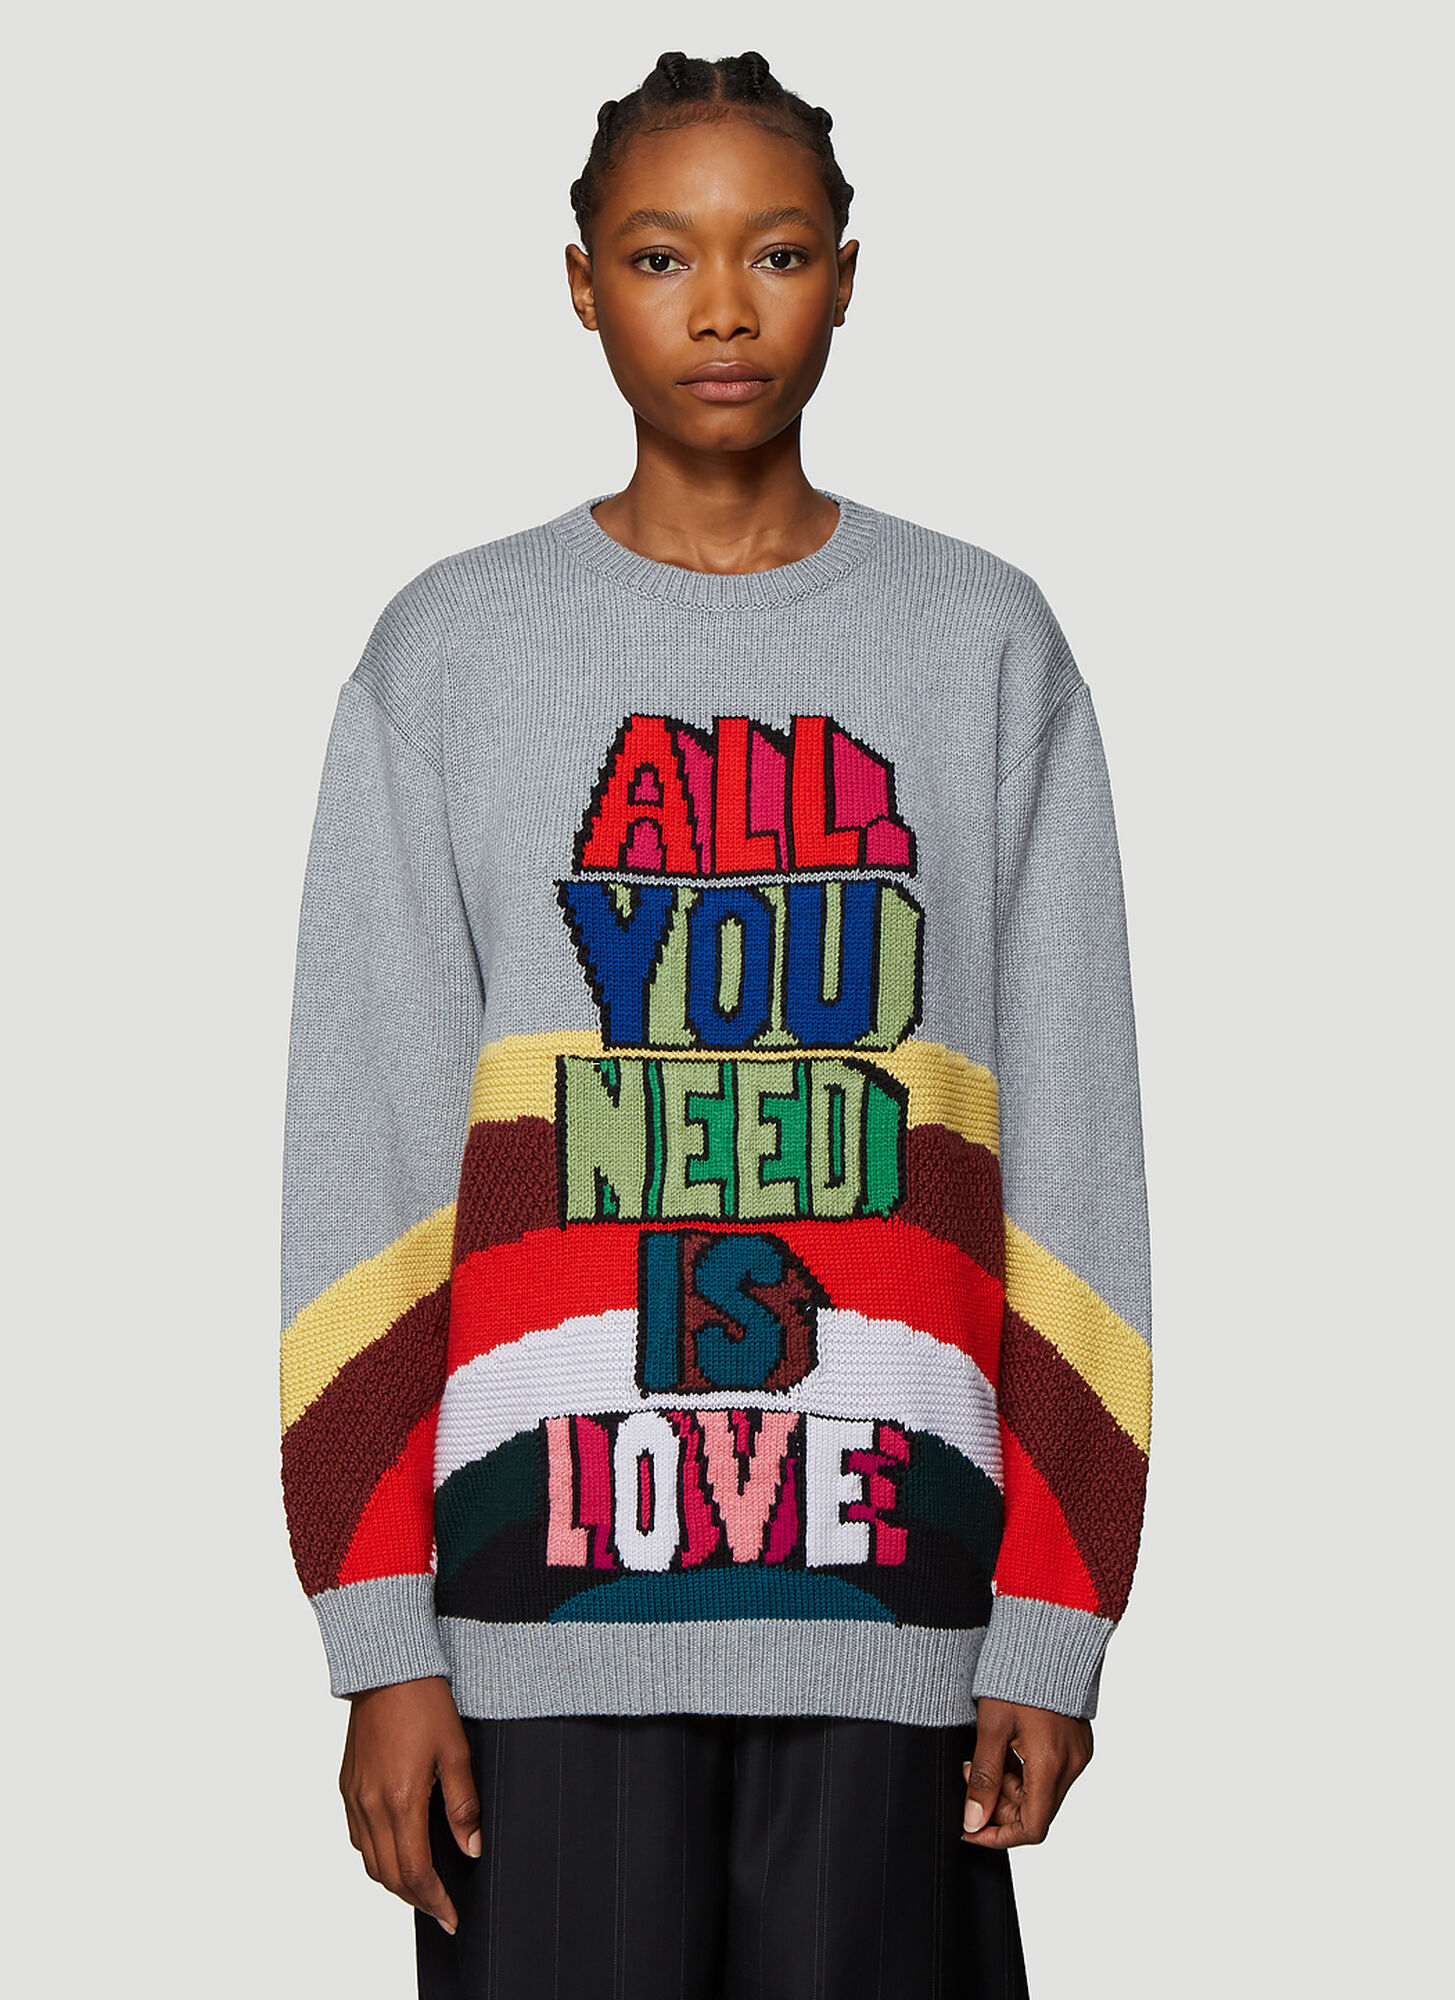 Stella McCartney The Beatles All Together Now Knit Sweater in Grey